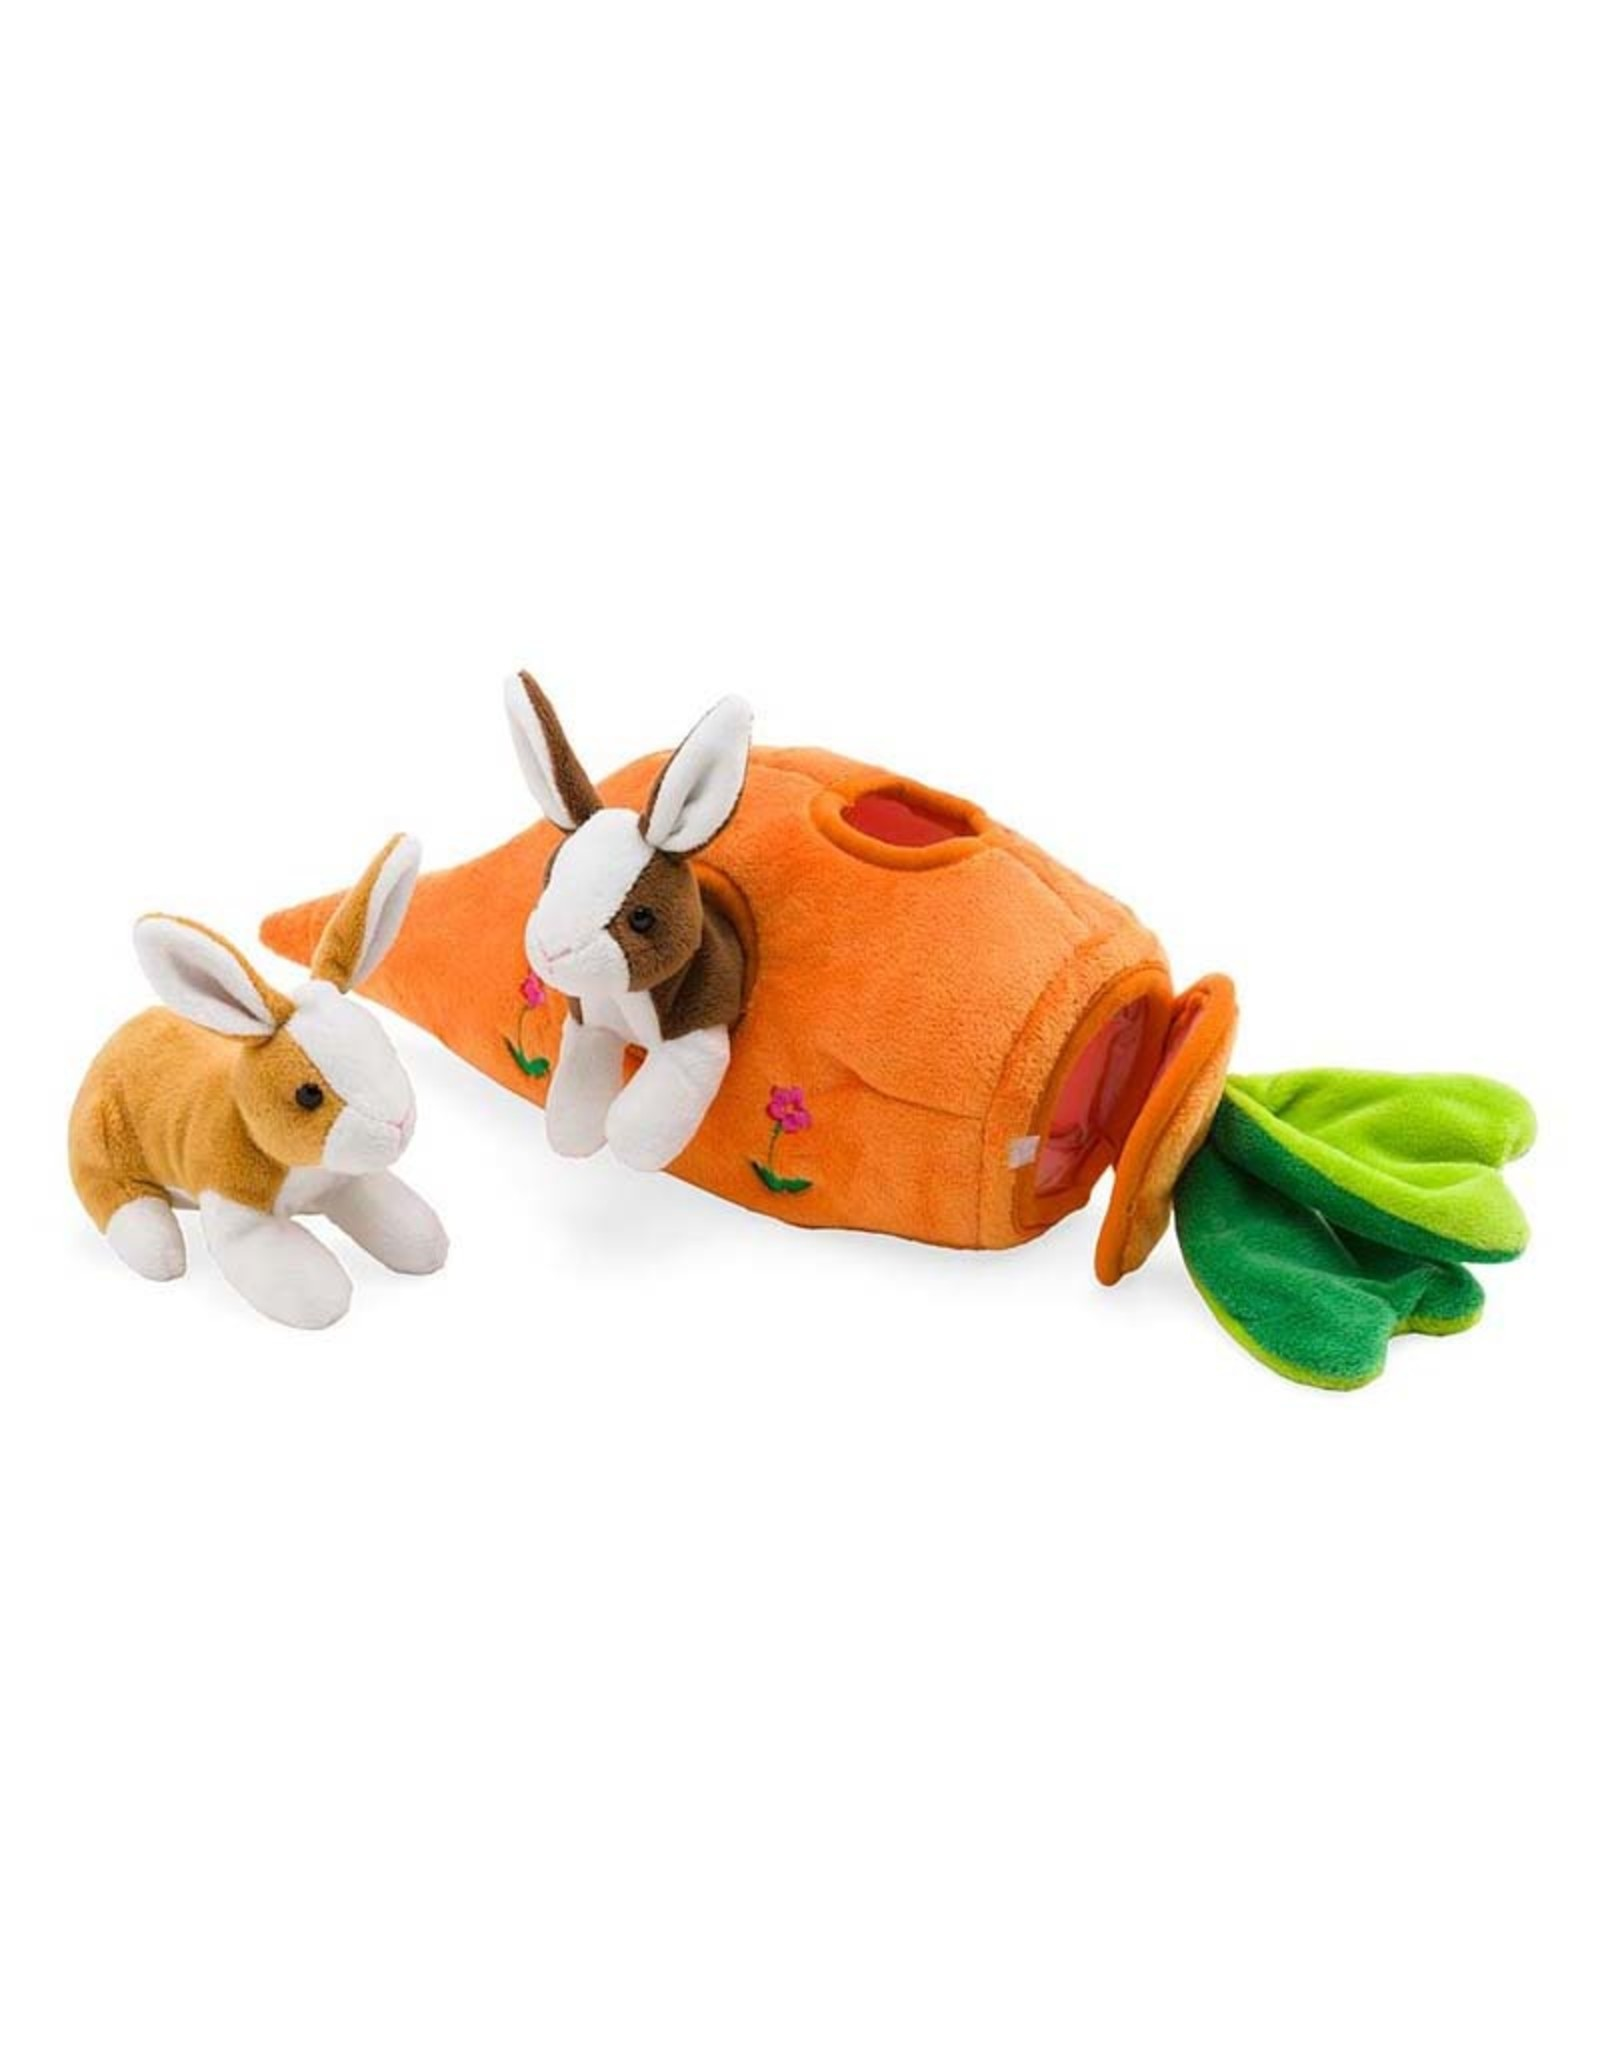 Hearth Song Bunny Cottage Playset